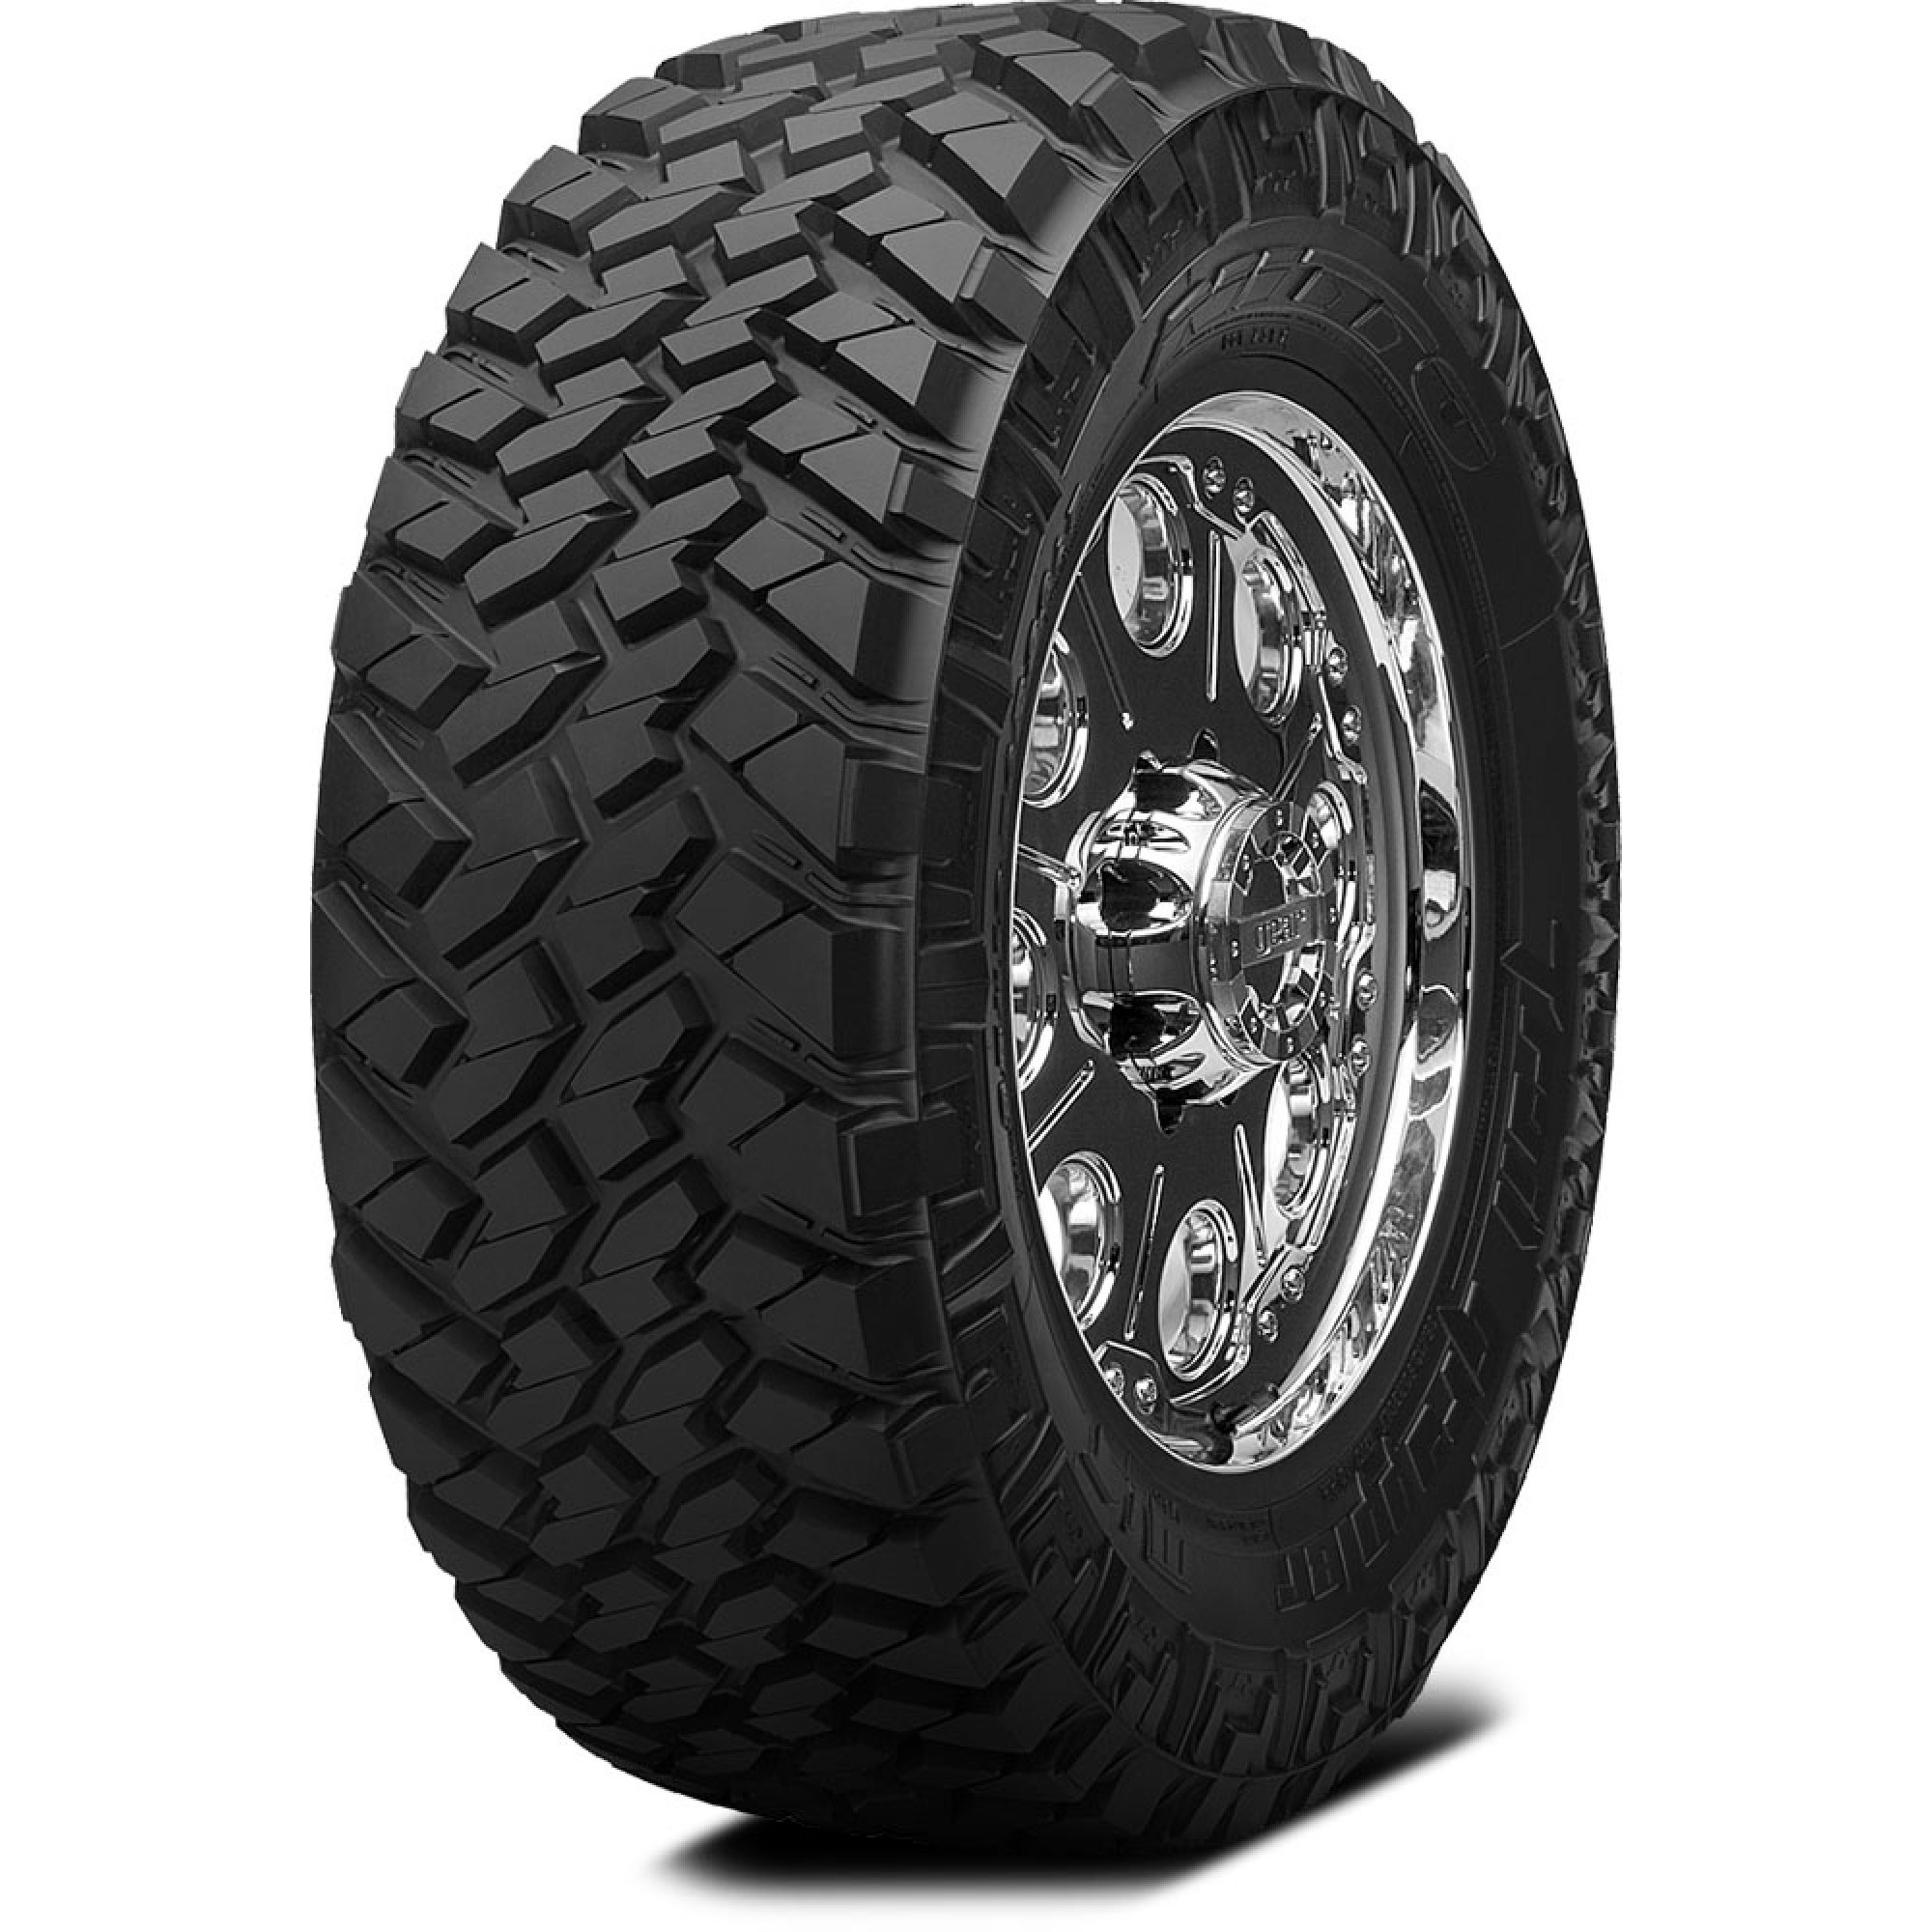 Llantas NITTO TRAIL GRAPPLER MT 305/55 R20